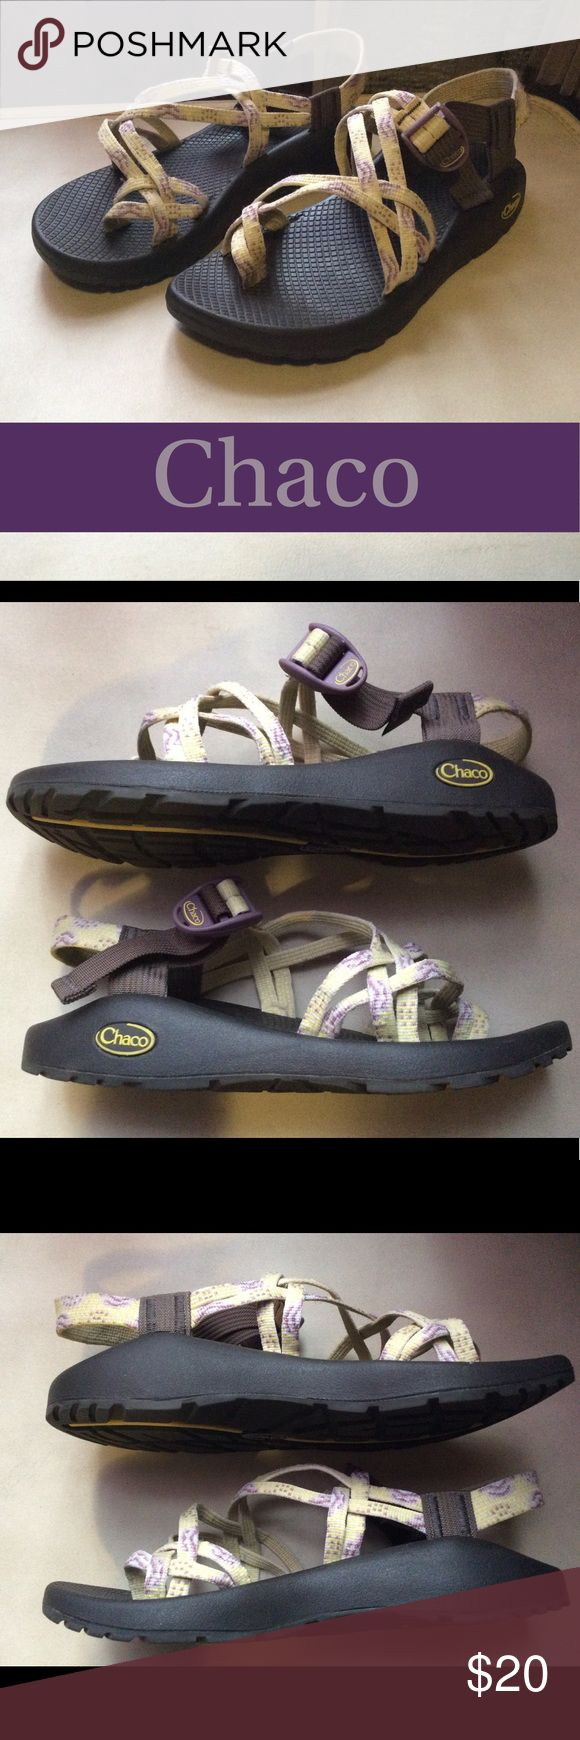 "Chaco Sandals yellow & purple Women's 8 Women's size 8 yellow & purple Chaco Sandals. Medium light wear overall. Sole is in excellent condition. Clean no odors.   Measurements: 10.5"" Long, 4"" at widest part of sole.   Non-smoking environment. Cat-friendly (not really, but he lives here & sneaks in the posh room when we're not looking) environment.  I try to ship within 24hrs of sale. Chaco Shoes Sandals"